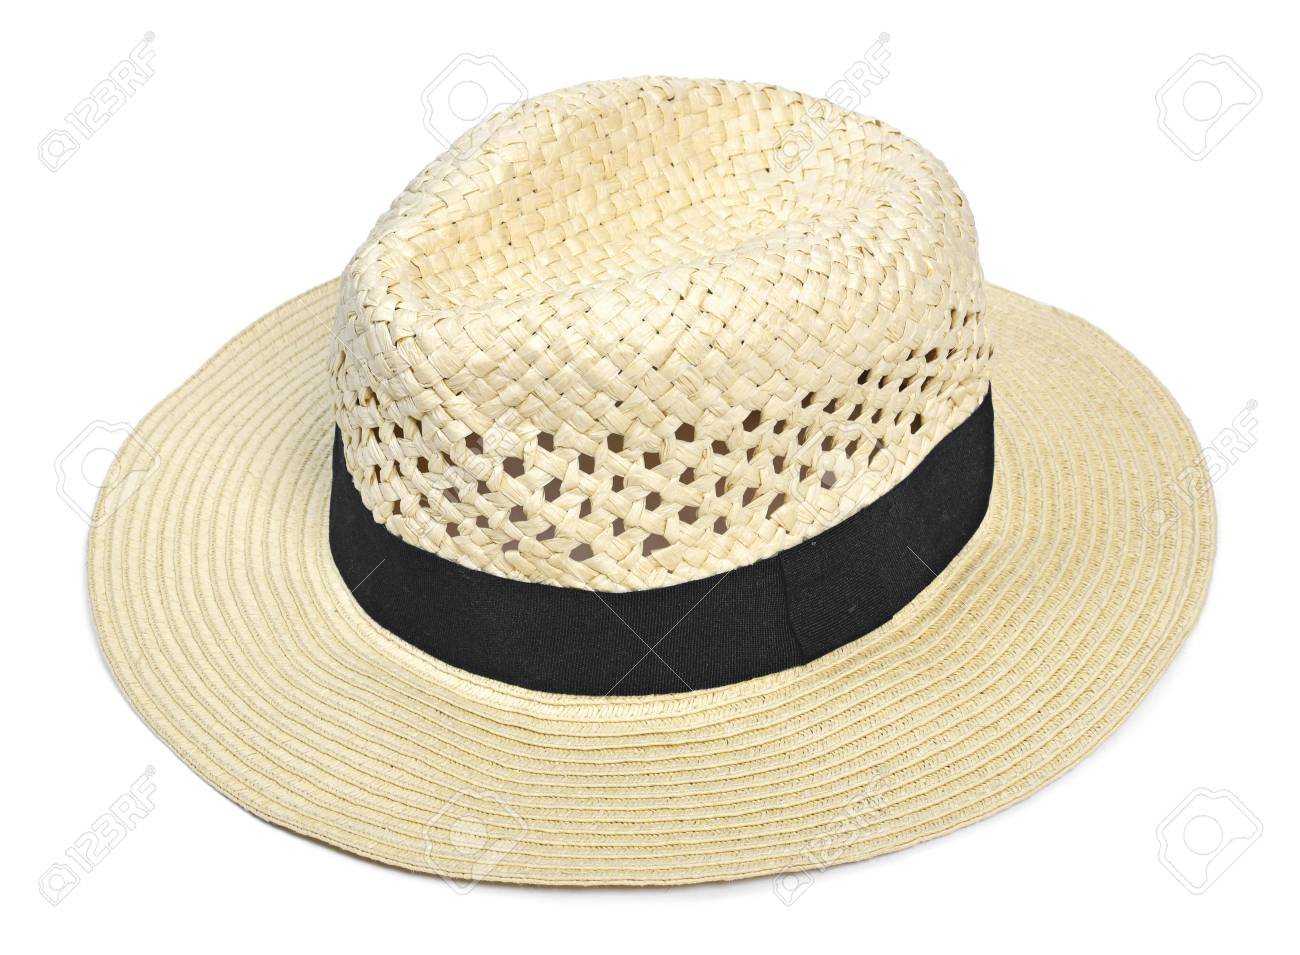 fecf9812b89d5 Panama hat, traditional summer has with black hatband or ribbon, isolated  on white background